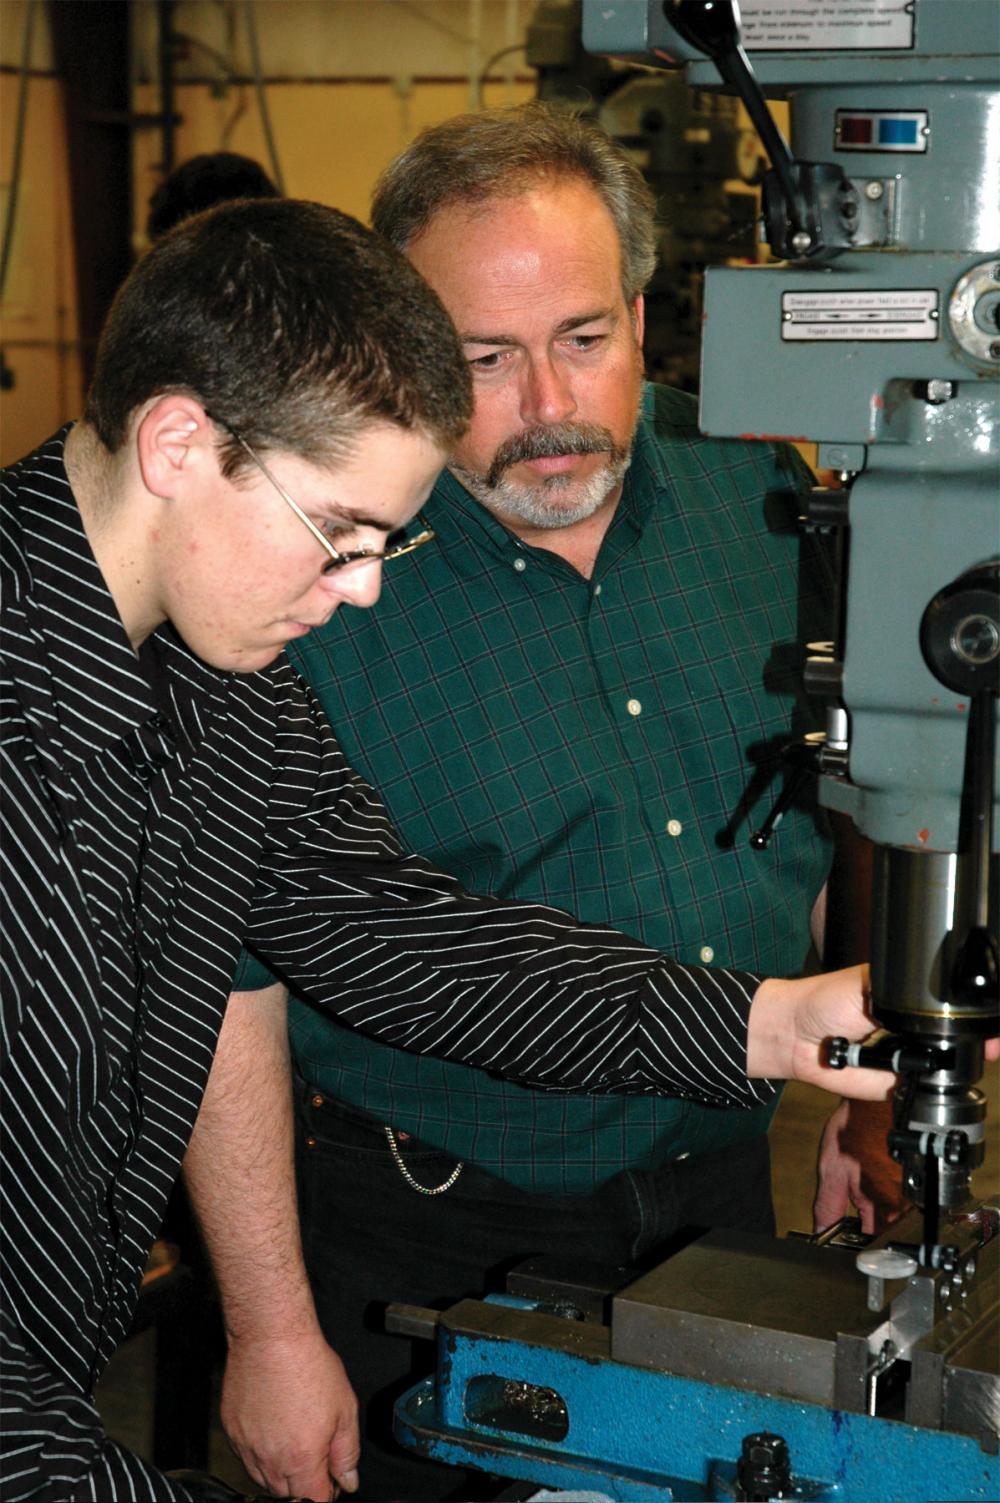 Paul Eastwood (right) works with a student